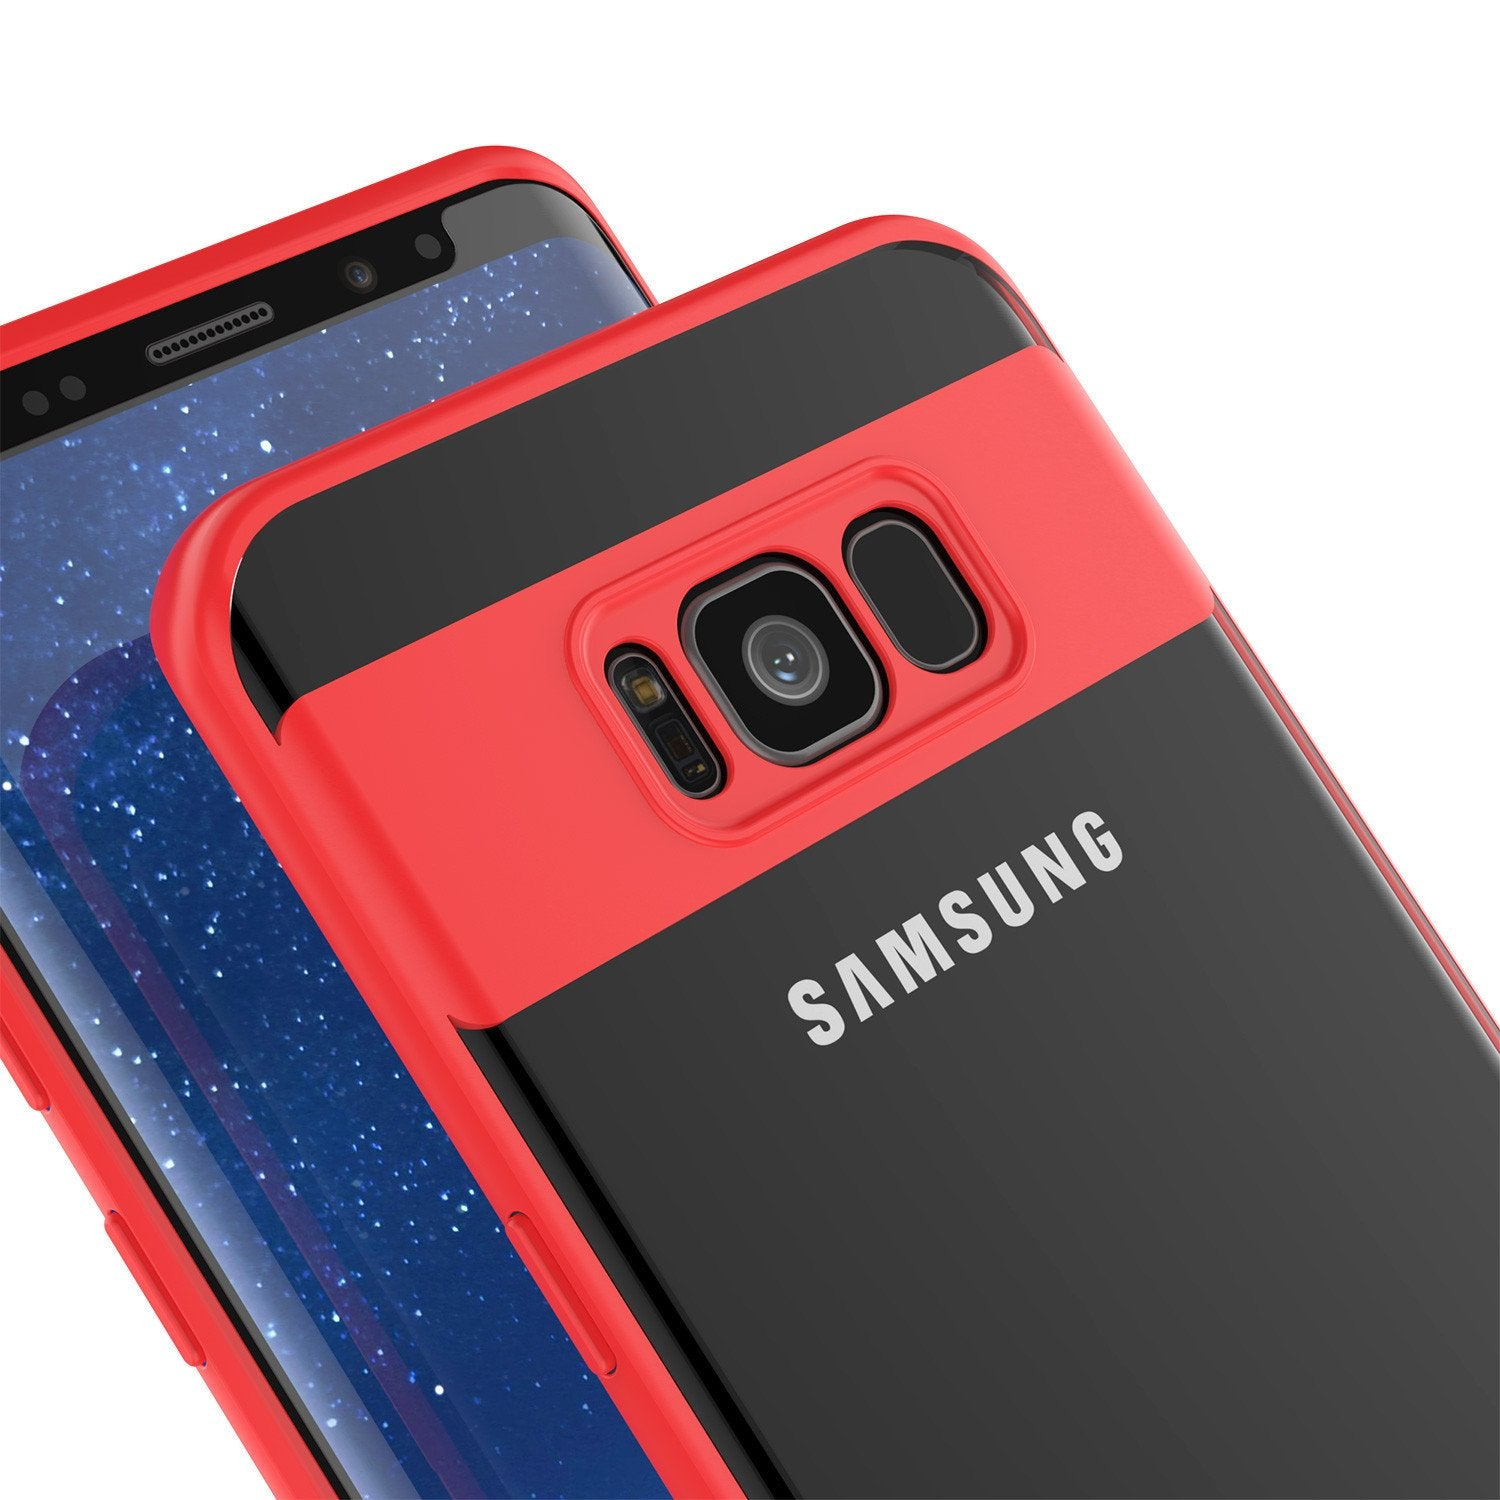 Galaxy S8 Plus Case, Punkcase [MASK Series] [RED] Full Body Hybrid Dual Layer TPU Cover W/ Protective PUNKSHIELD Screen Protector - PunkCase NZ